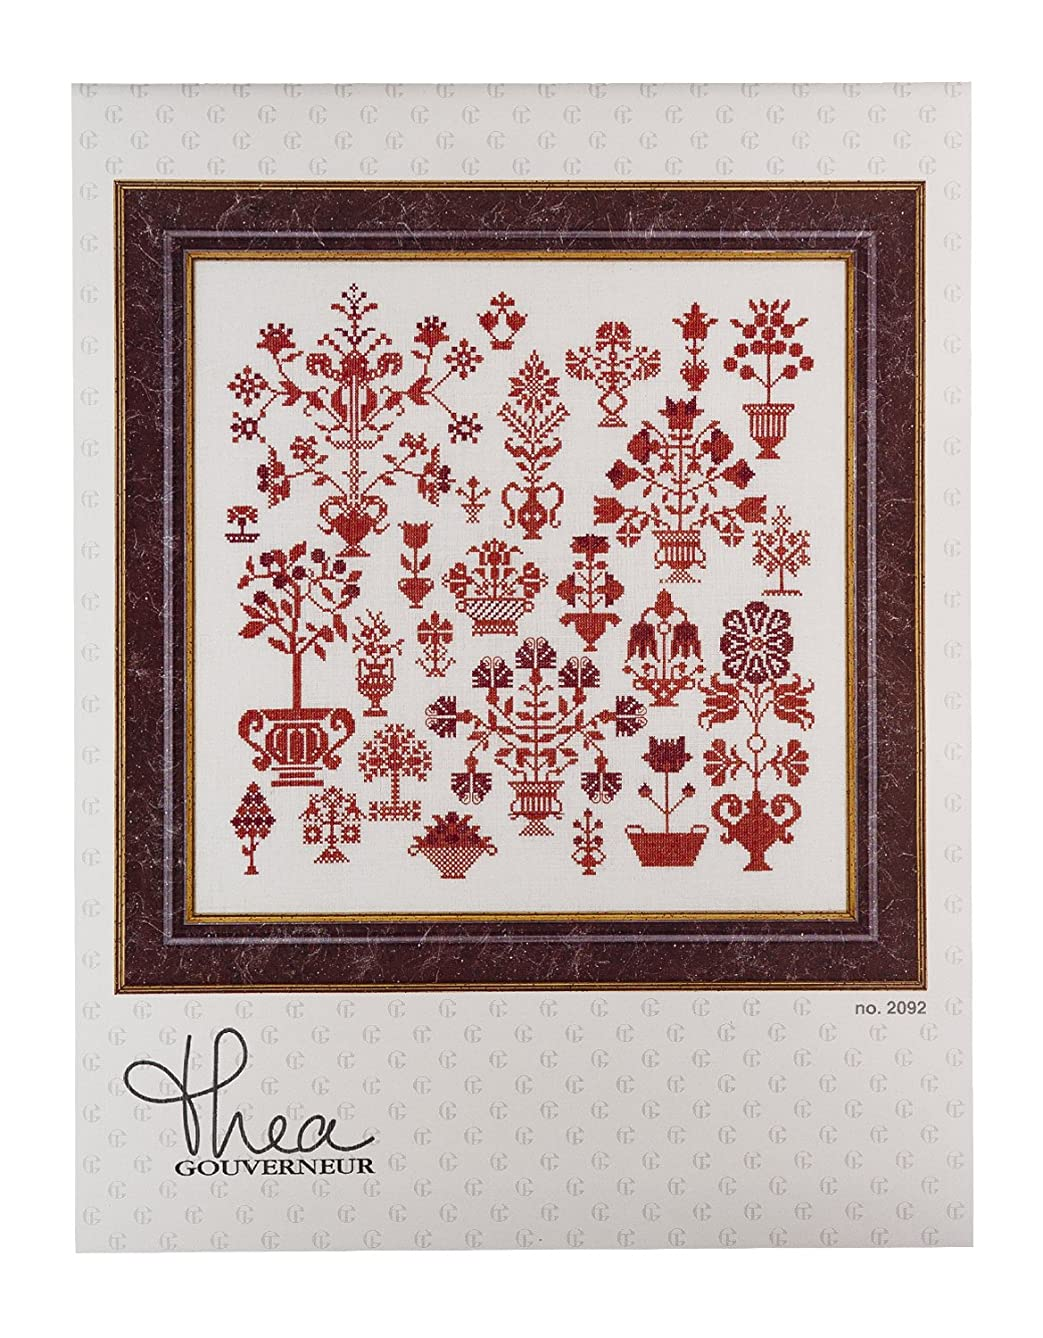 Thea Gouverneur Antique Flower Sampler Counted Cross Stitch Kit, 31.1-Inch-by-13.8-Inch